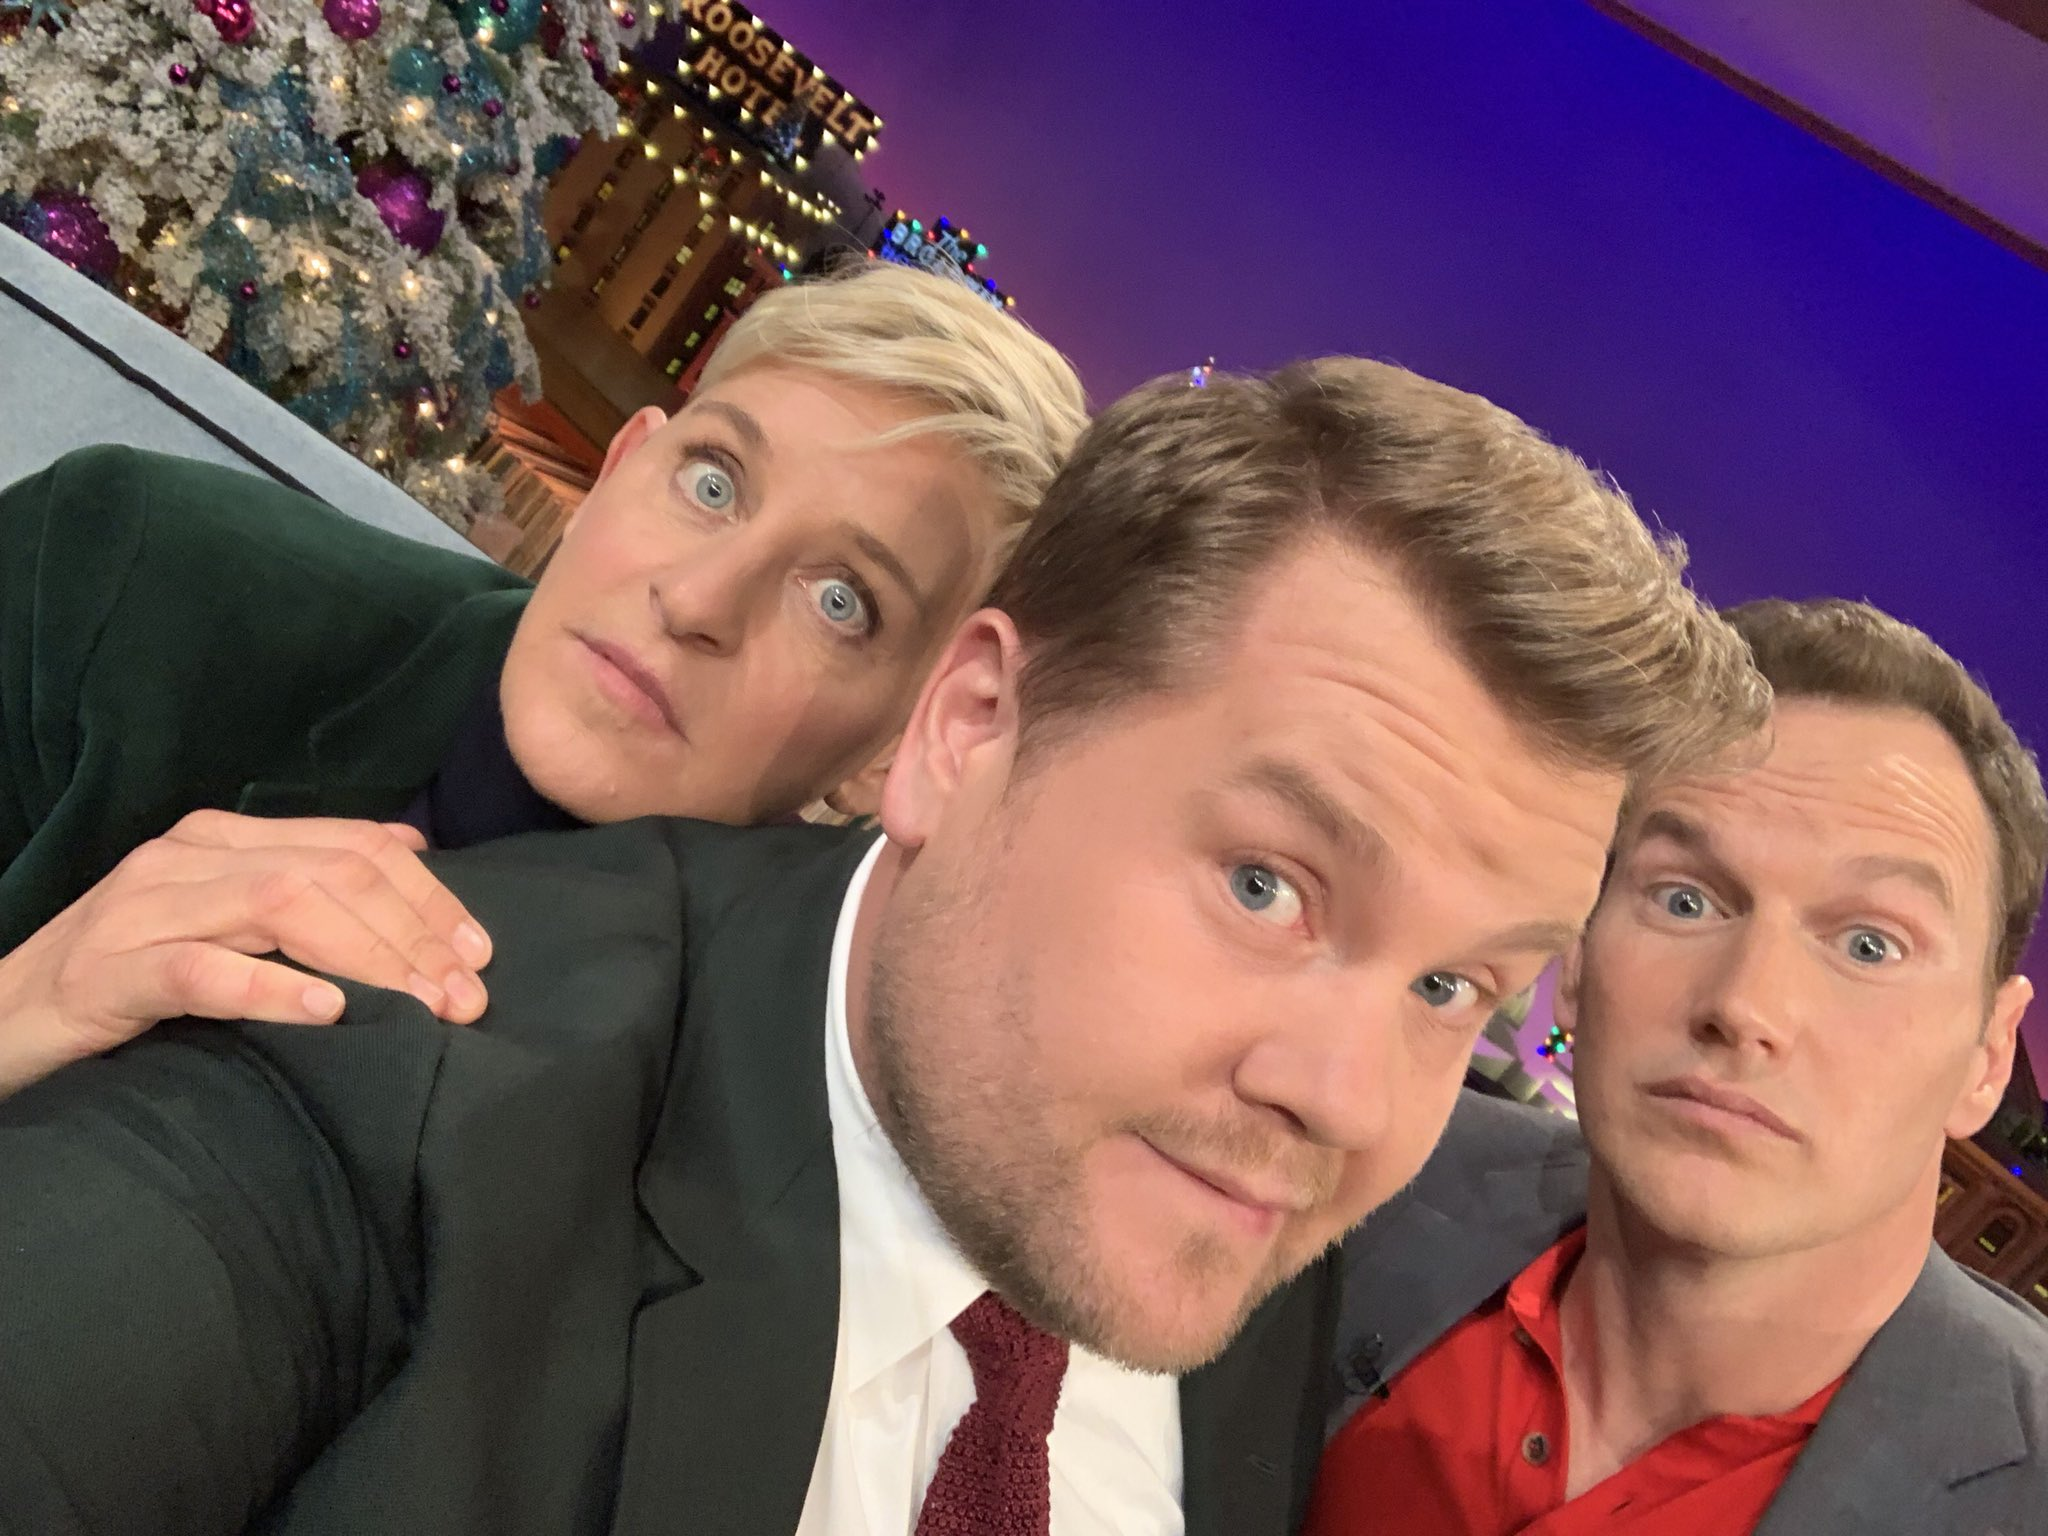 I'm on the @LateLateShow with @JKCorden tonight. It's gonna be great great. 12:37/11:37c on CBS https://t.co/fKrK92hnVY